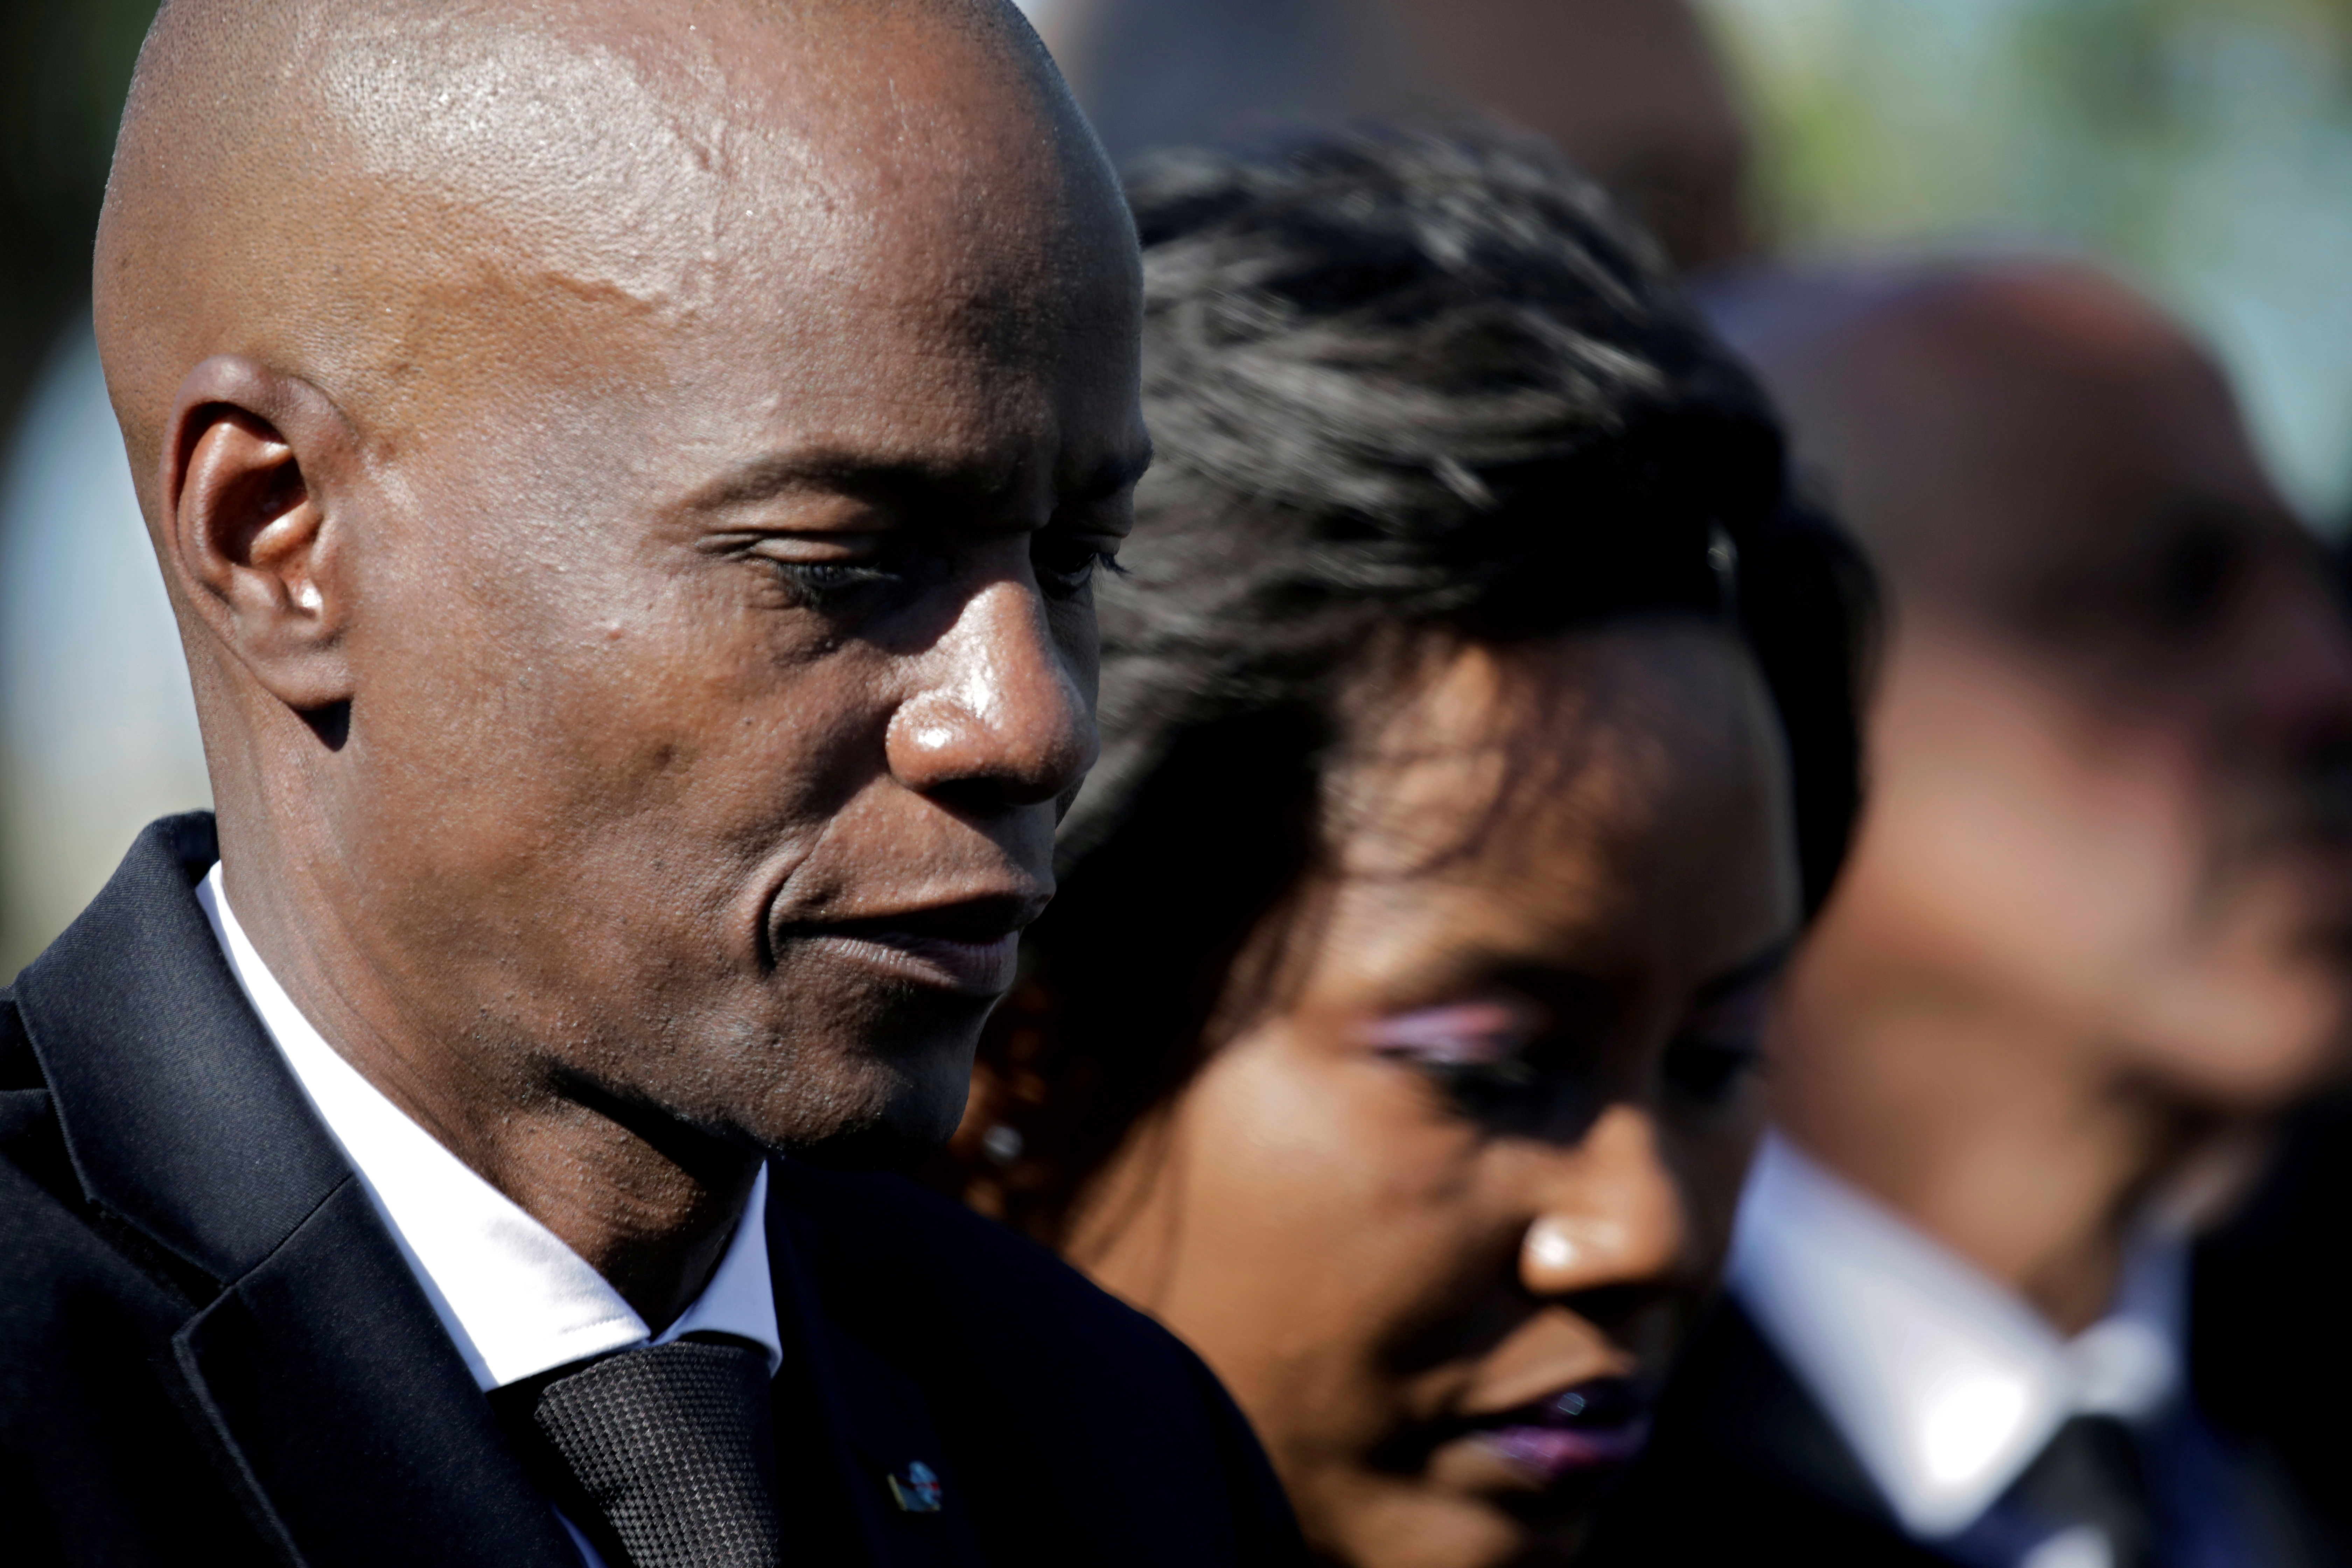 Haiti's President Jovenel Moise and first lady Martine attend a ceremony at a memorial for the tenth anniversary of the January 12, 2010 earthquake, in Titanyen, Haiti, January 12, 2020. REUTERS/Andres Martinez Casares/File Photo